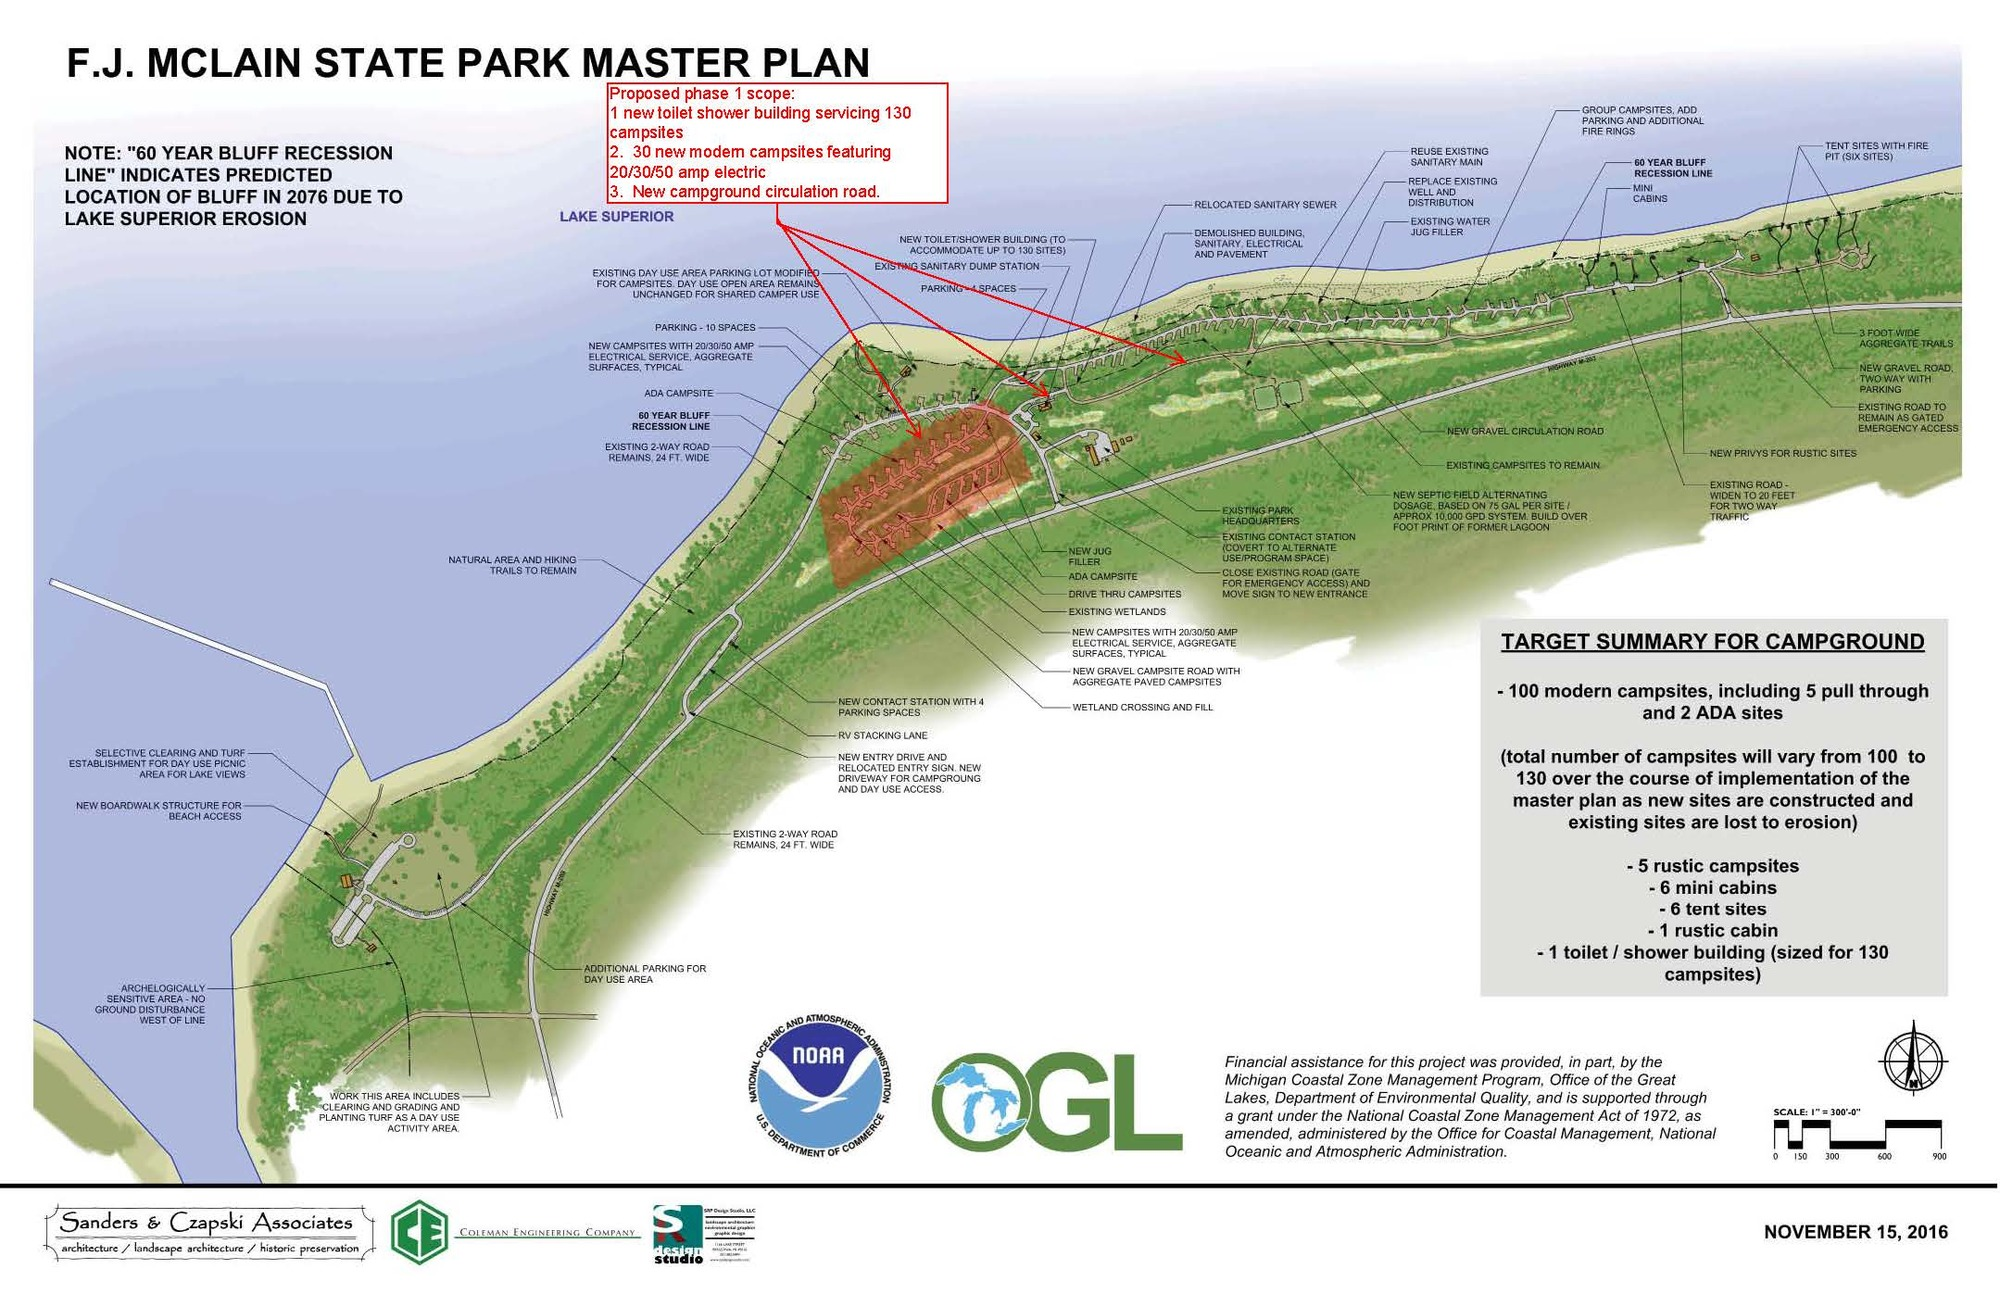 A map of F.J. McLain State Park shows scheduled construction improvements during Phase 1 of implementation of the park�s recently approved master plan